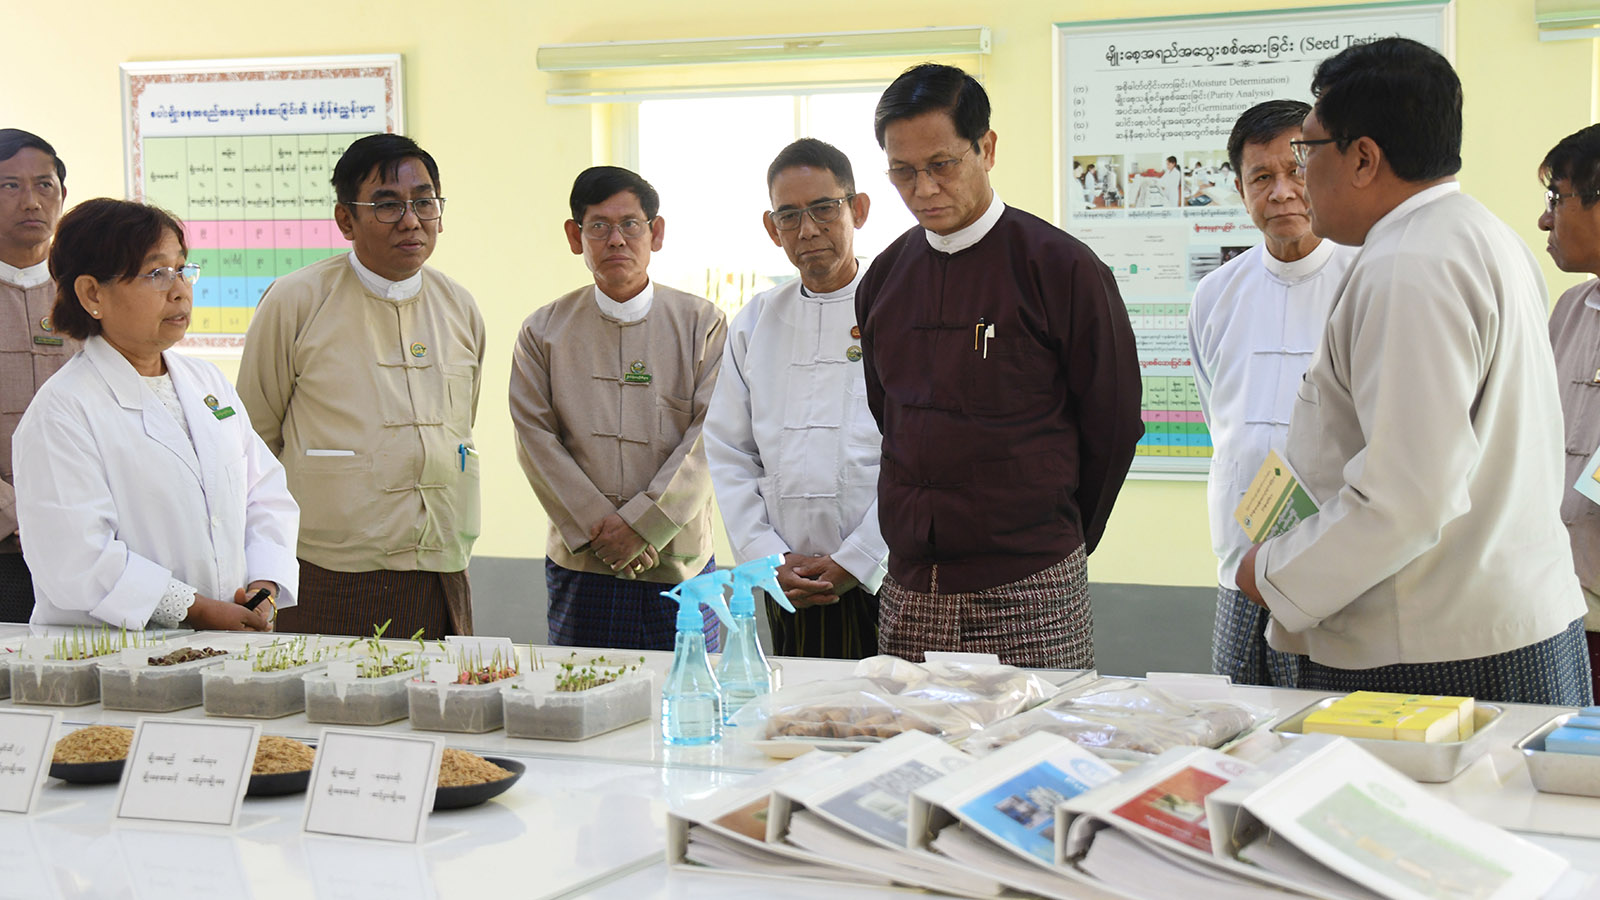 Vice President U Henry Van Thio visits the exhibition at the '2020 Seed Fair' at the State Agricultural Institute in Nay Pyi Taw yesterday. Photo: MNA